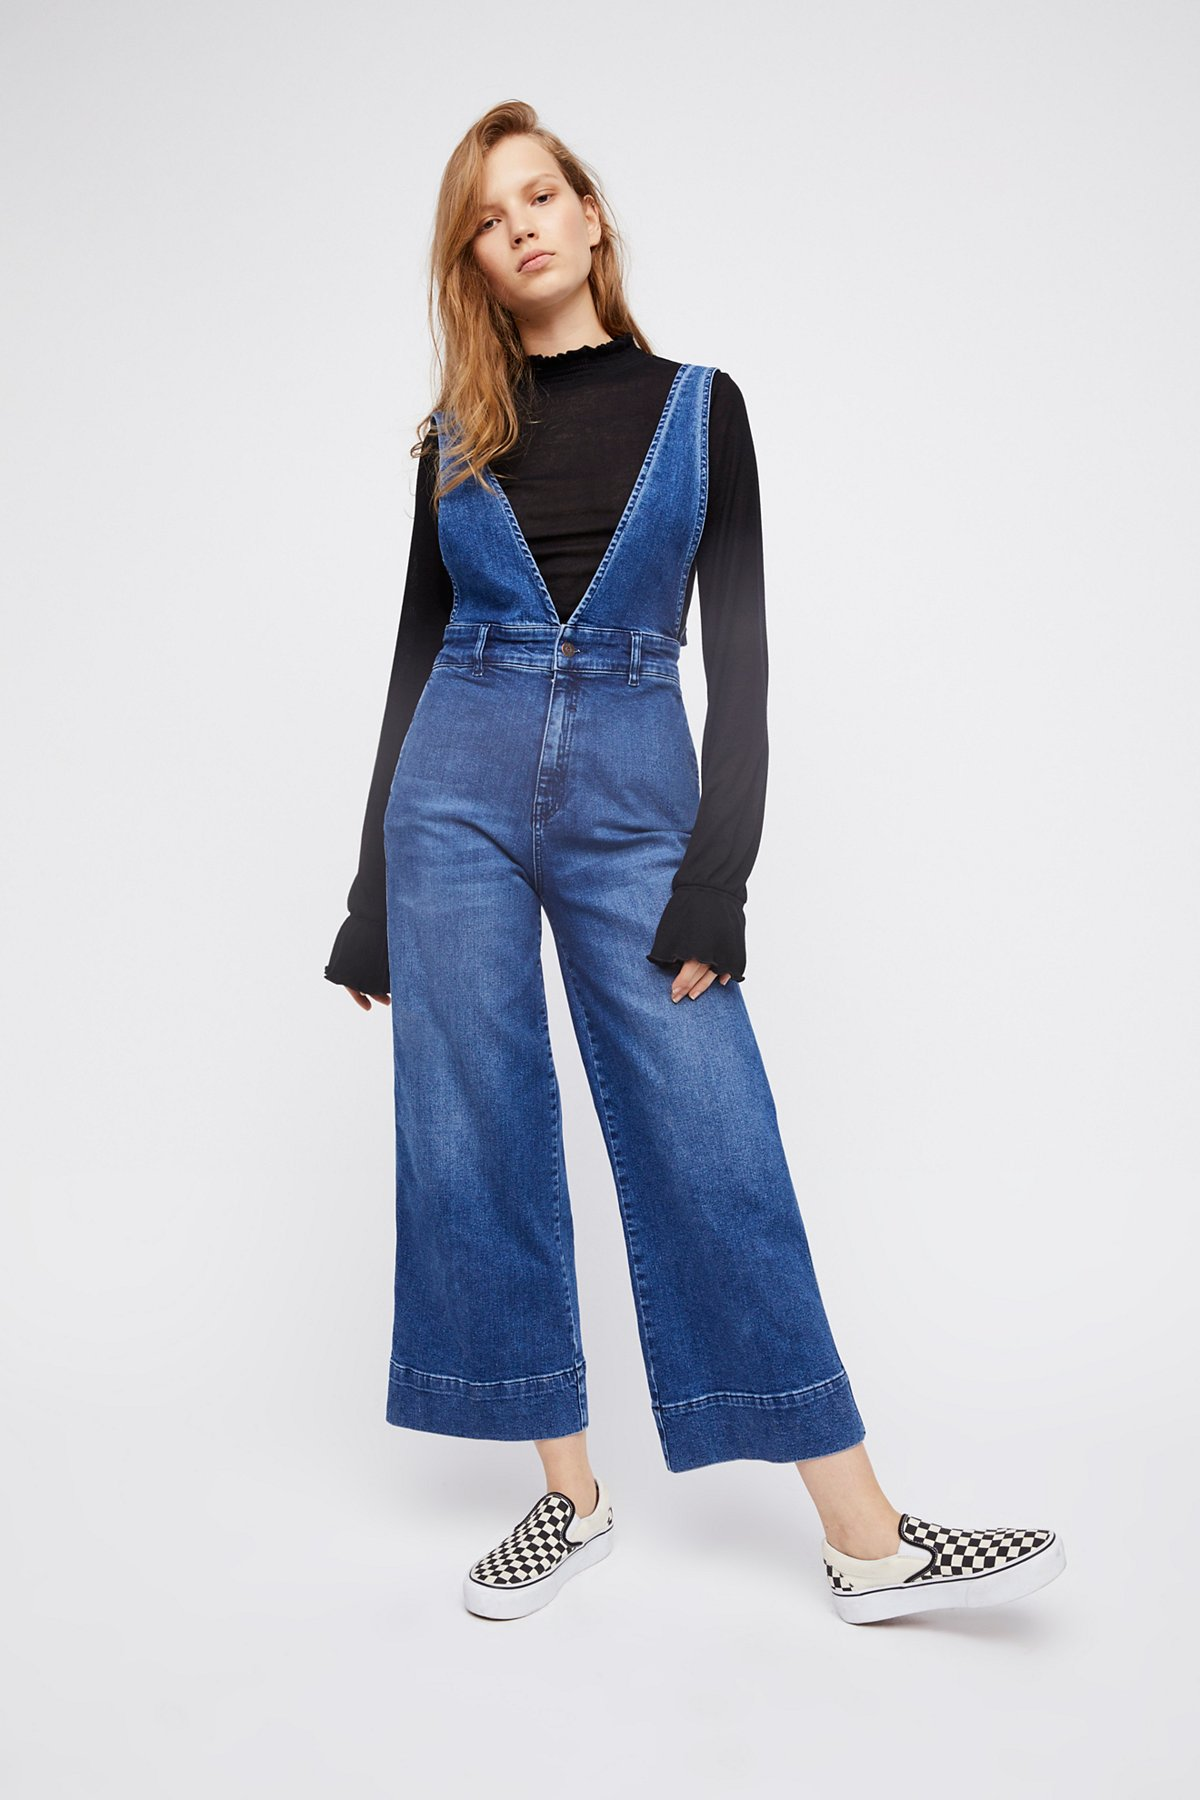 A-Line Overall